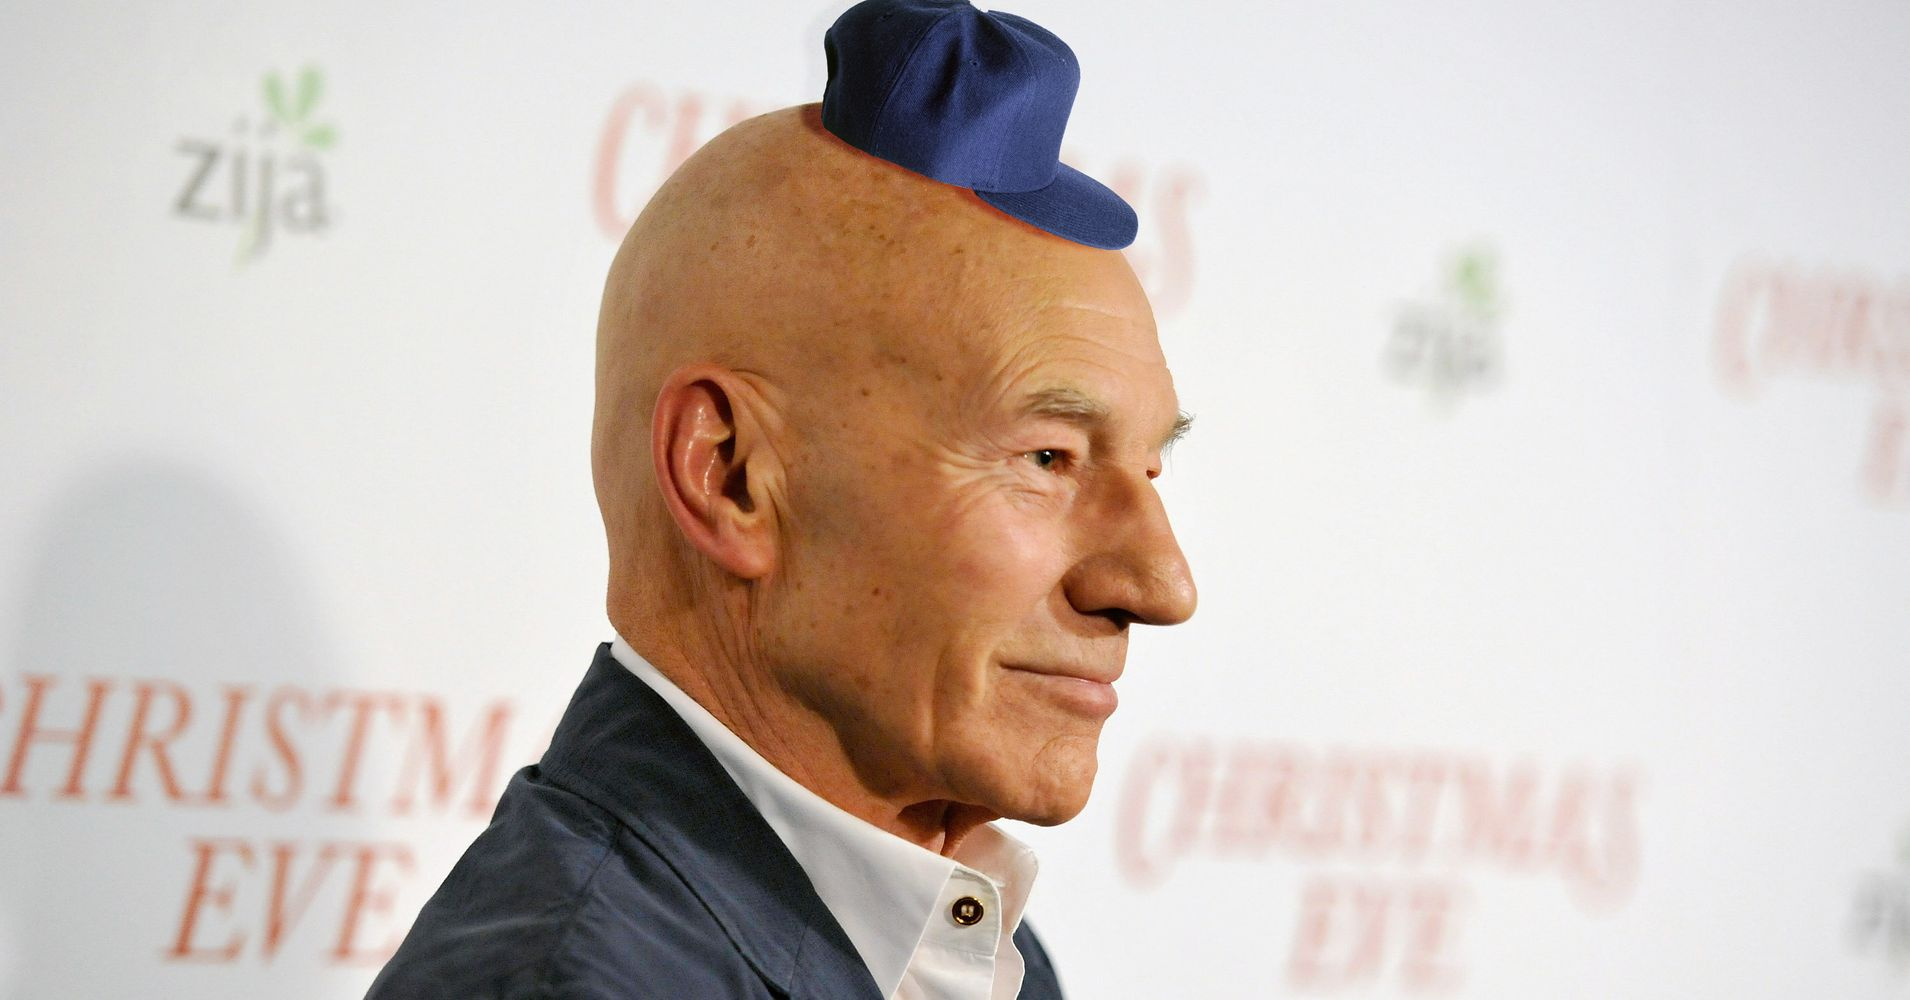 does wearing a hat make you go bald huffpost